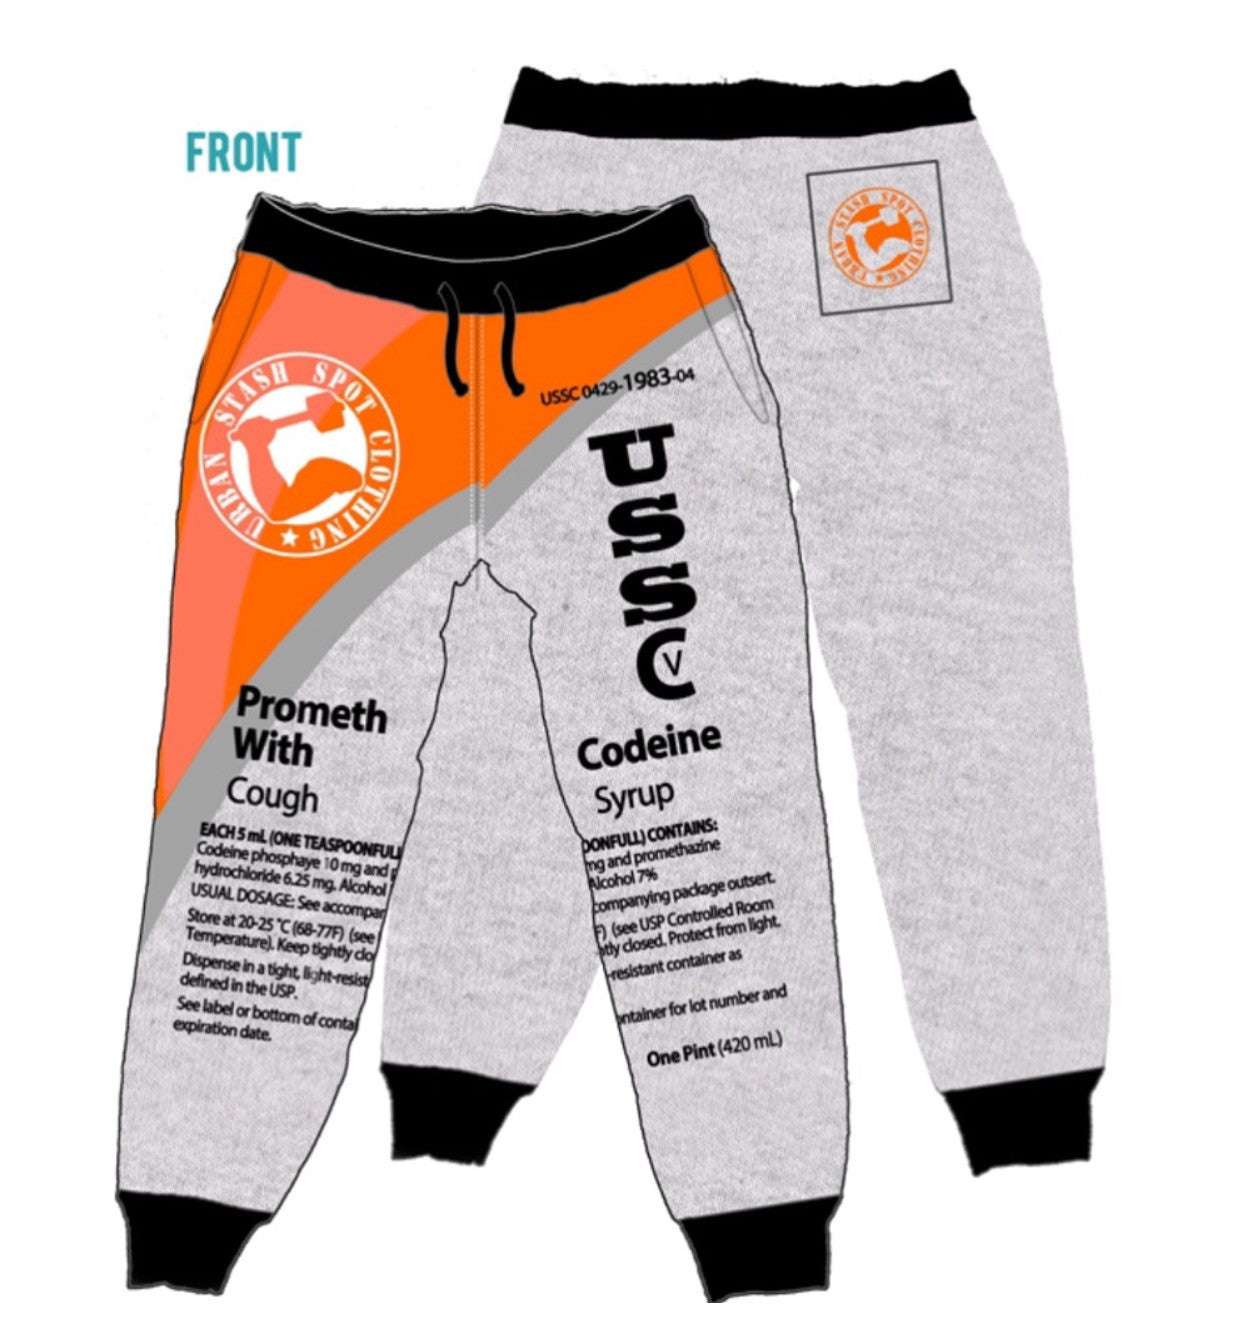 Ussc act heather gray joggers